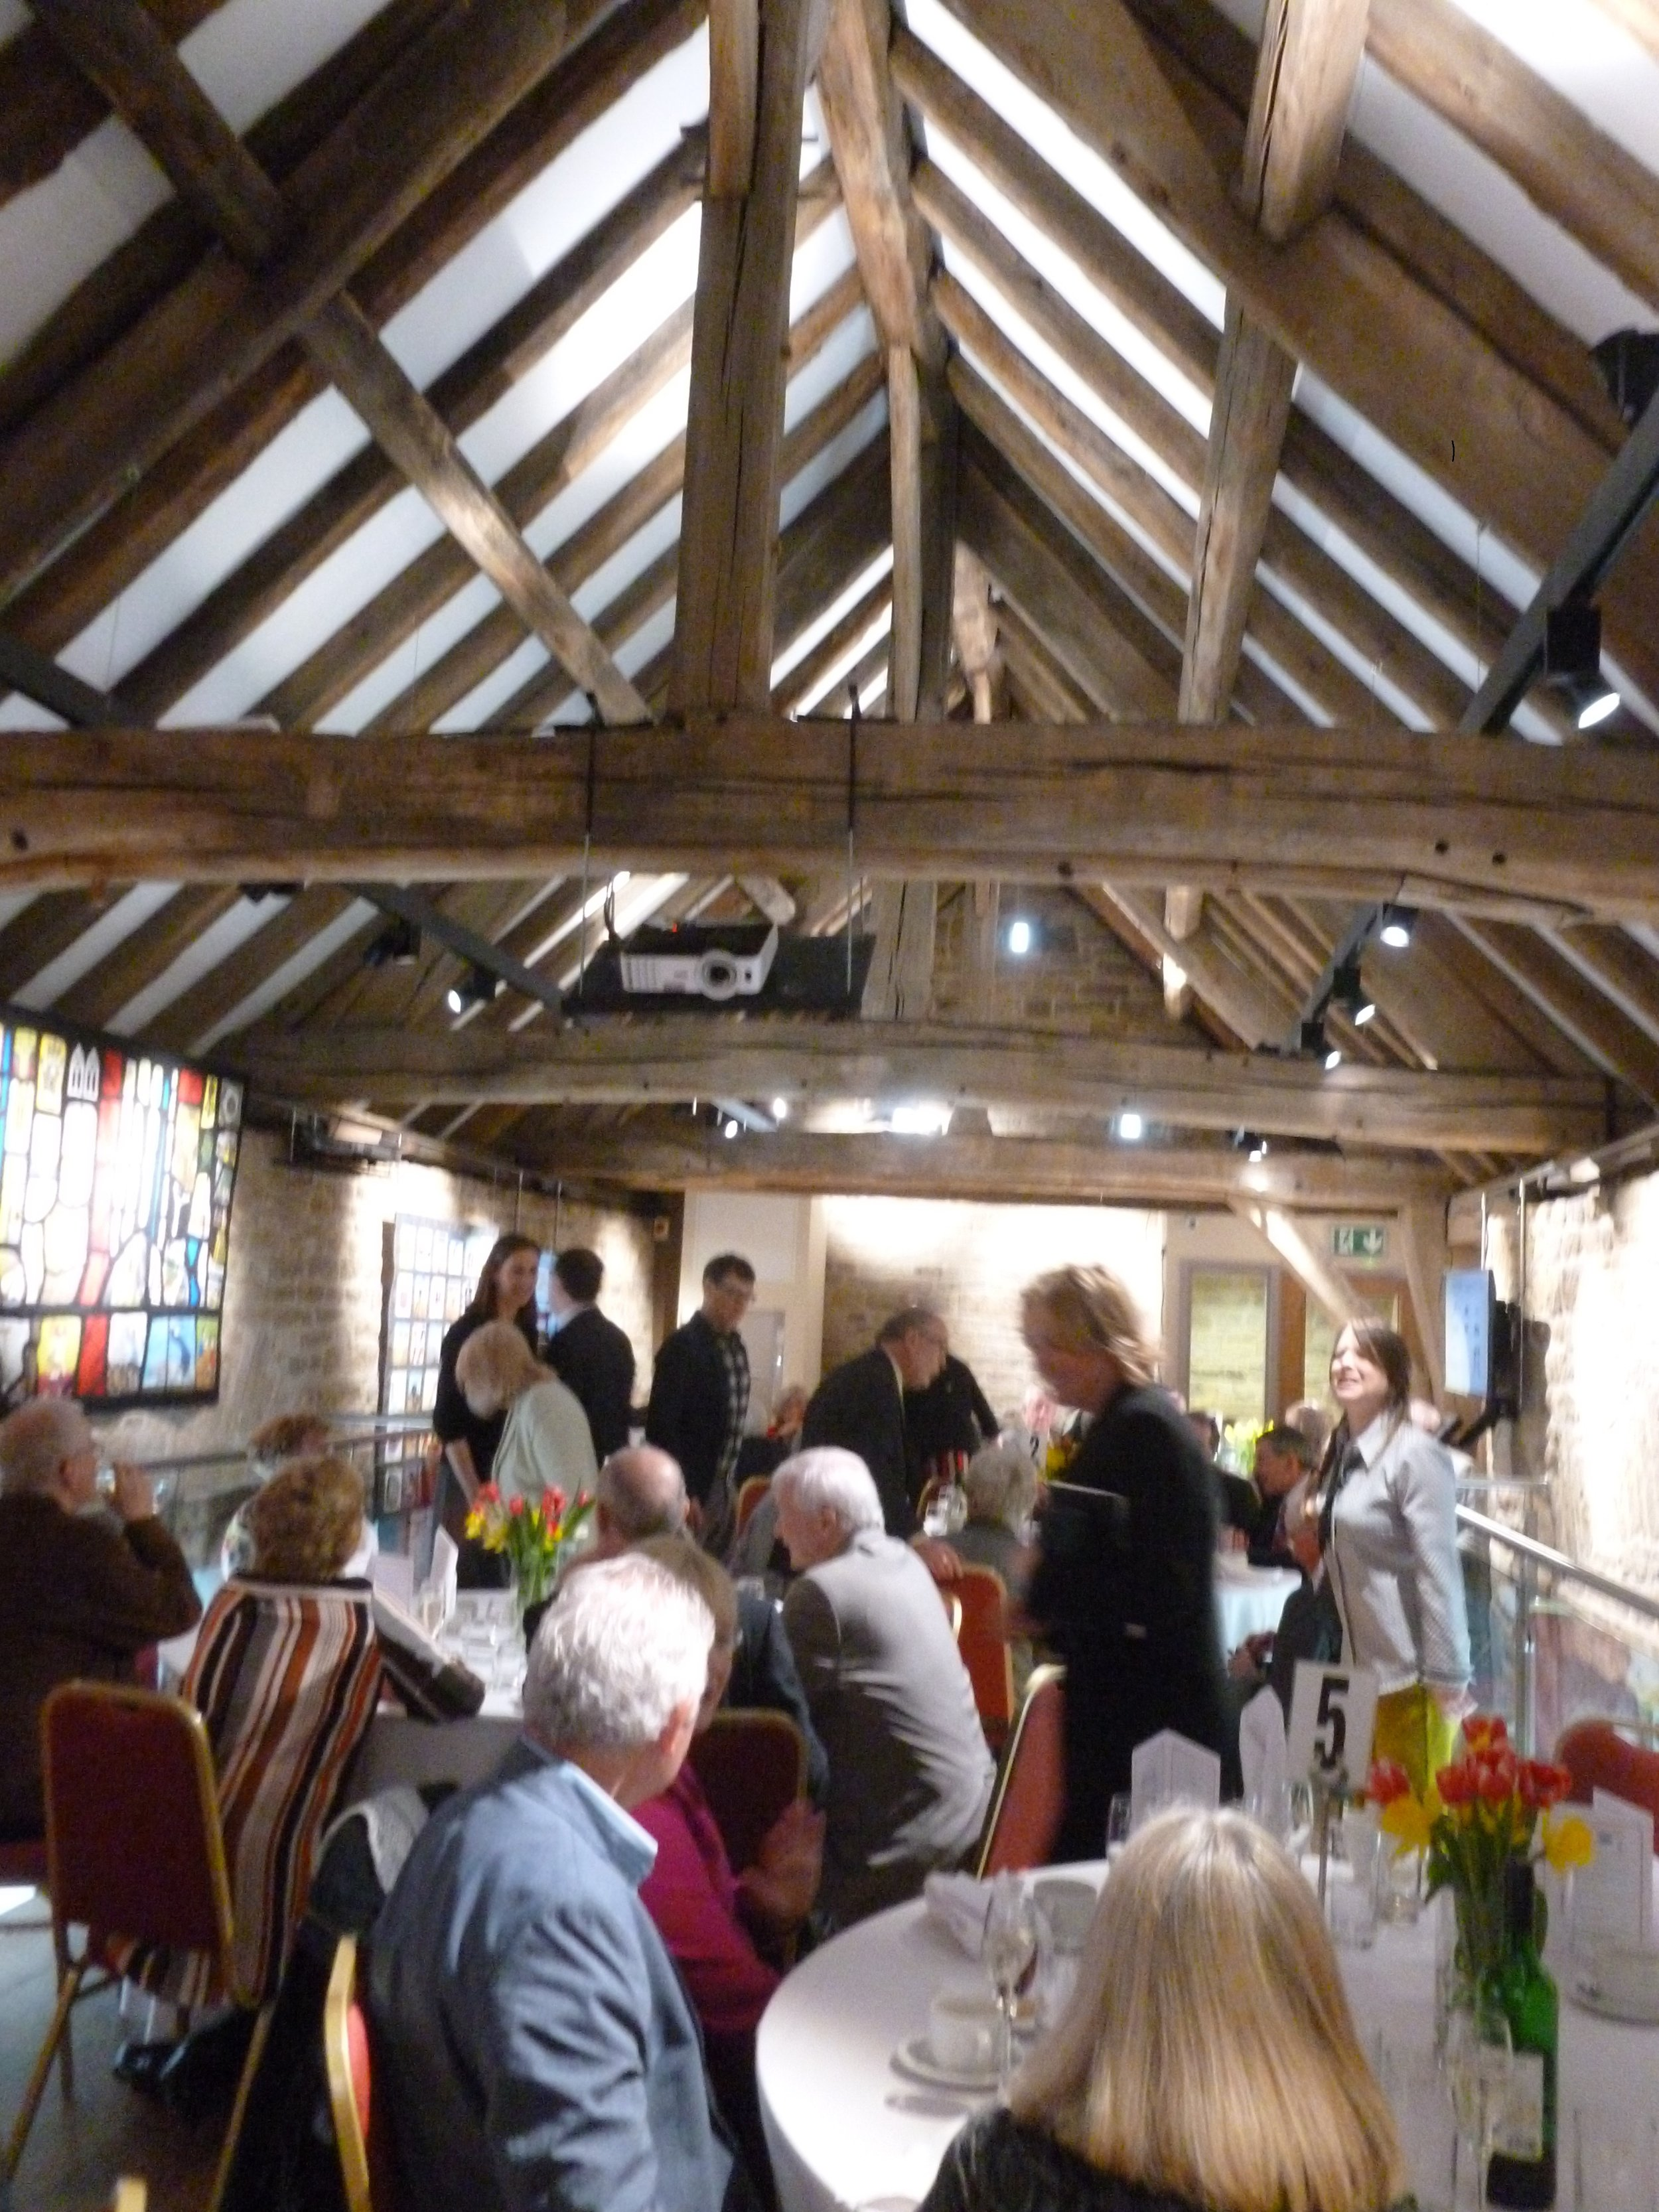 Dronfield Hall Barn interior view at an event.jpg